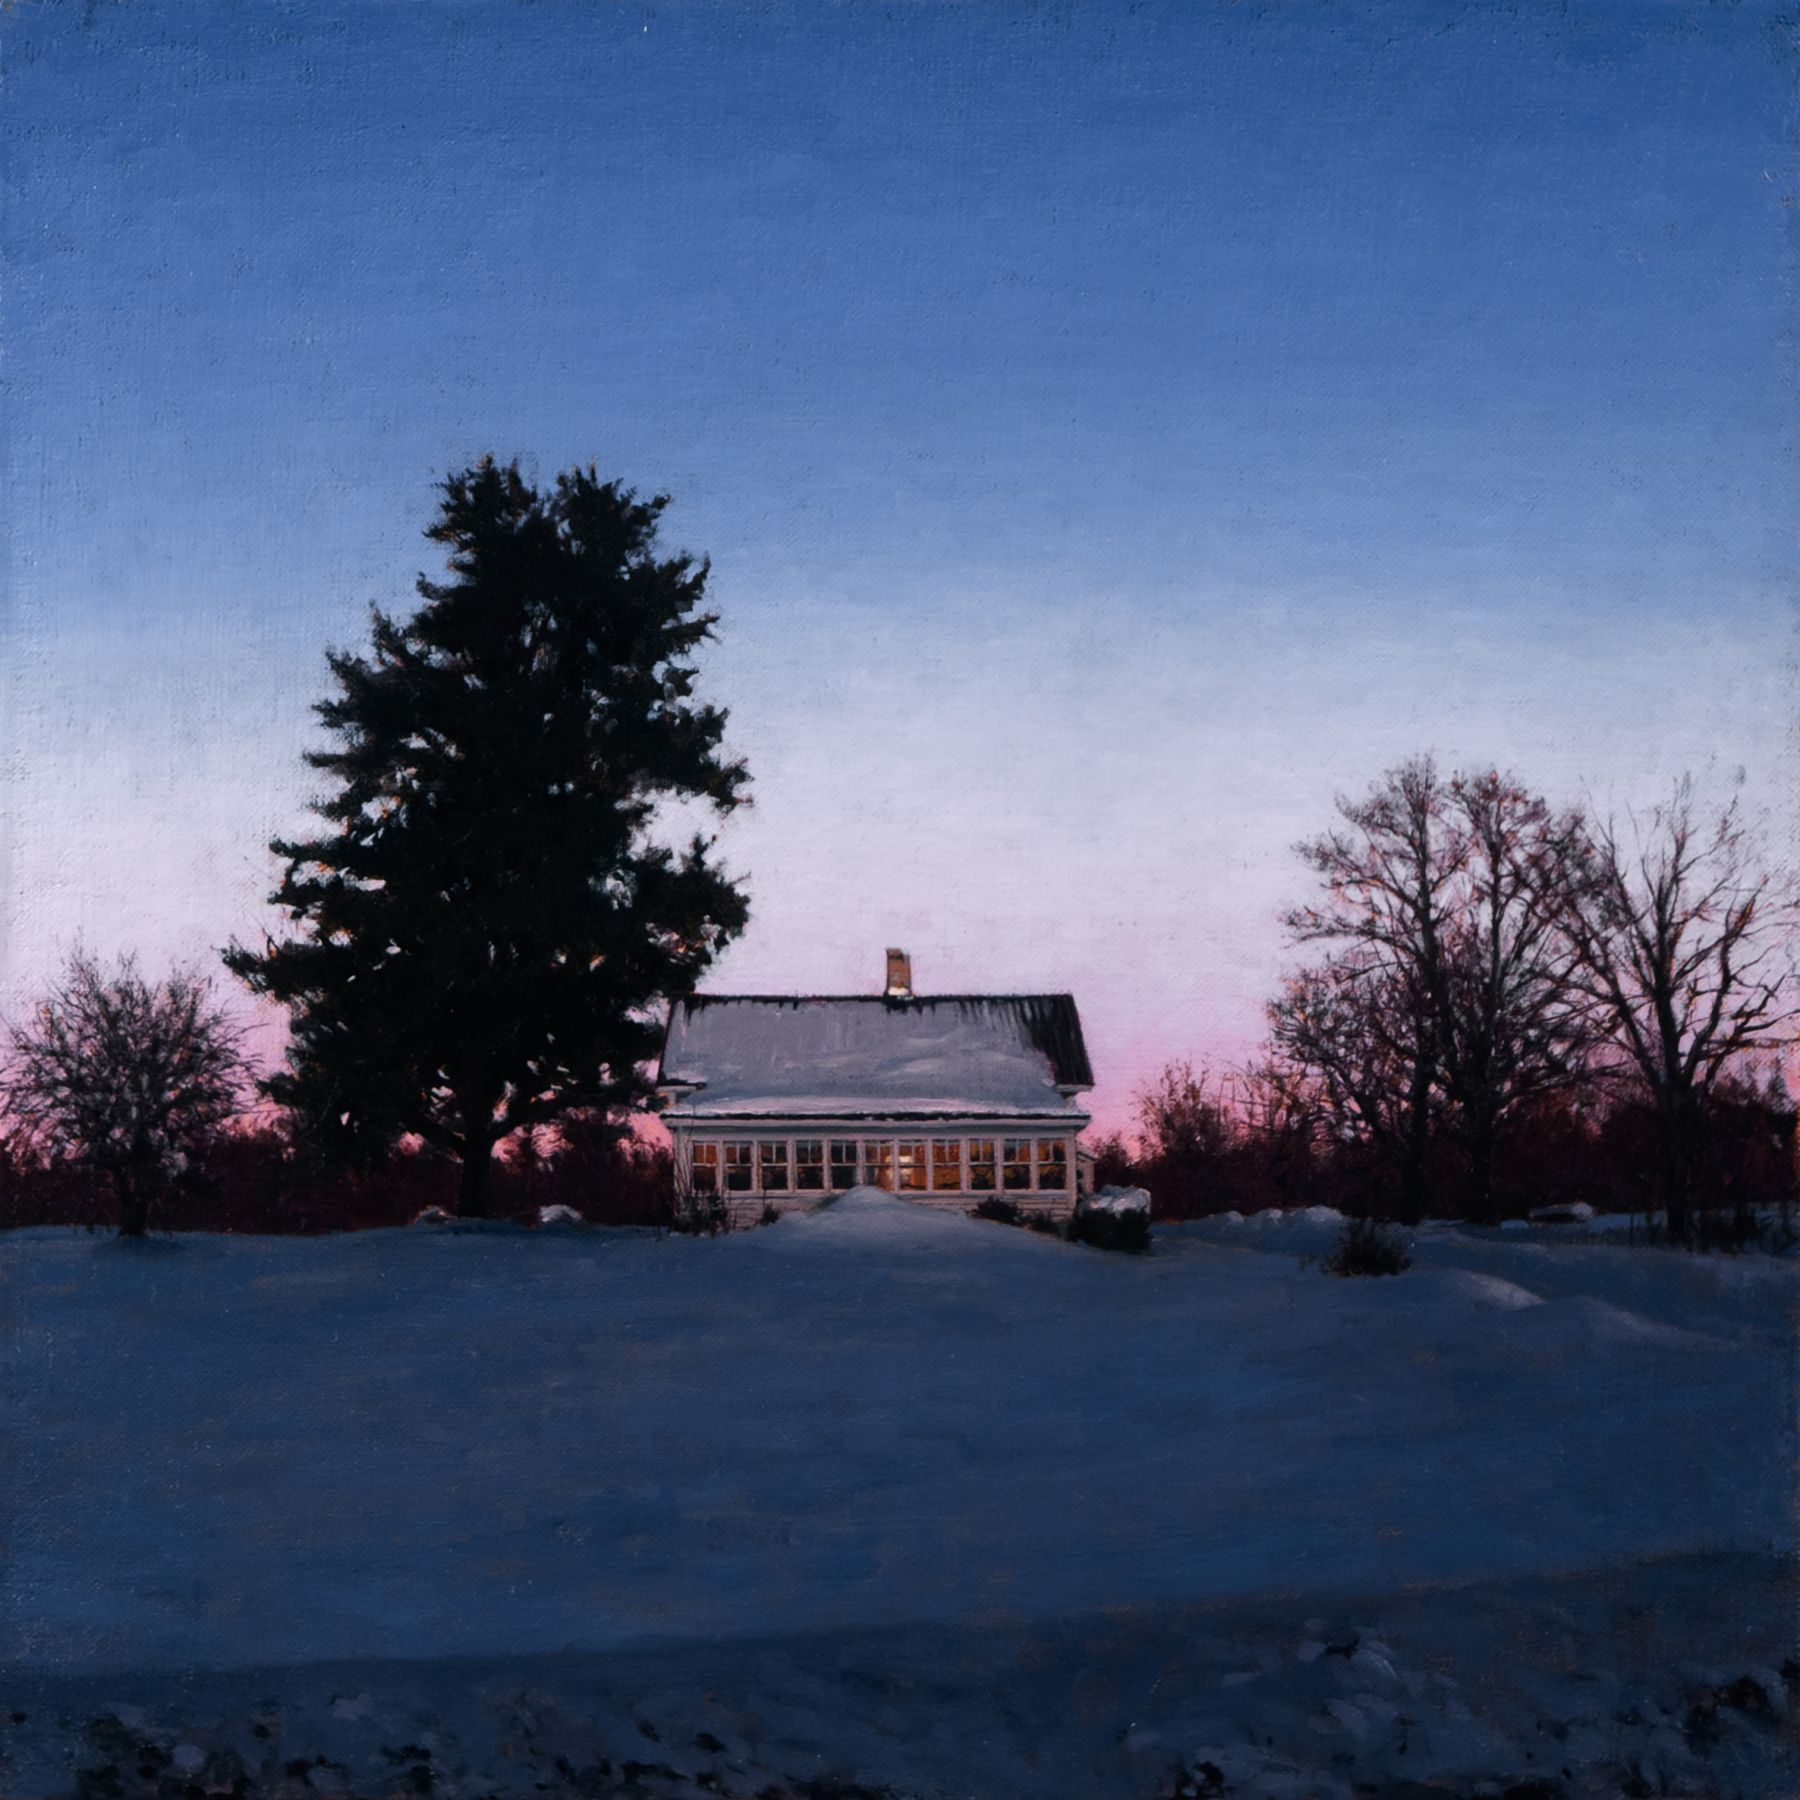 Linden Frederick, White Pine (SOLD), 2008, oil on panel, 12 1/4 x 12 1/4 inches